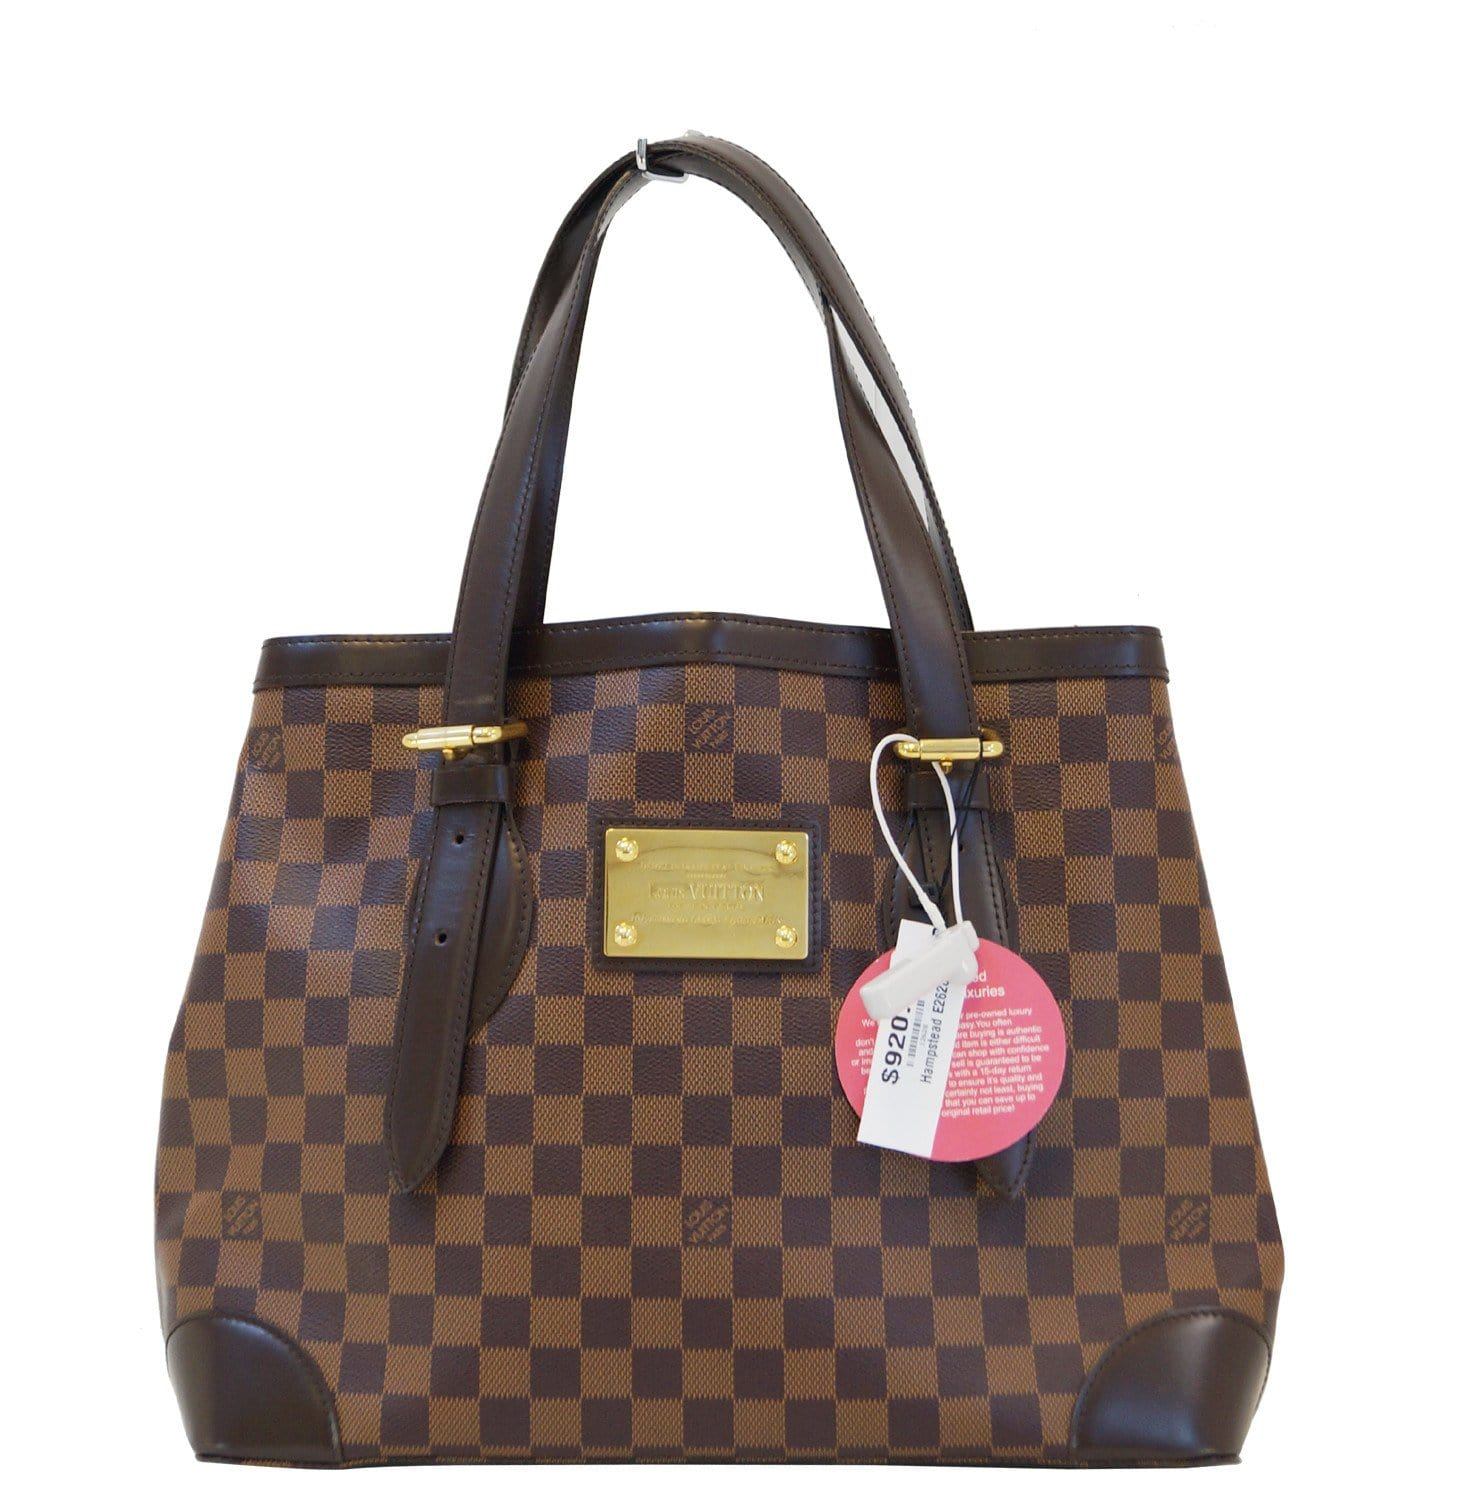 e704c5266d29 LOUIS VUITTON Hampstead MM Damier Ebene Shoulder Handbag